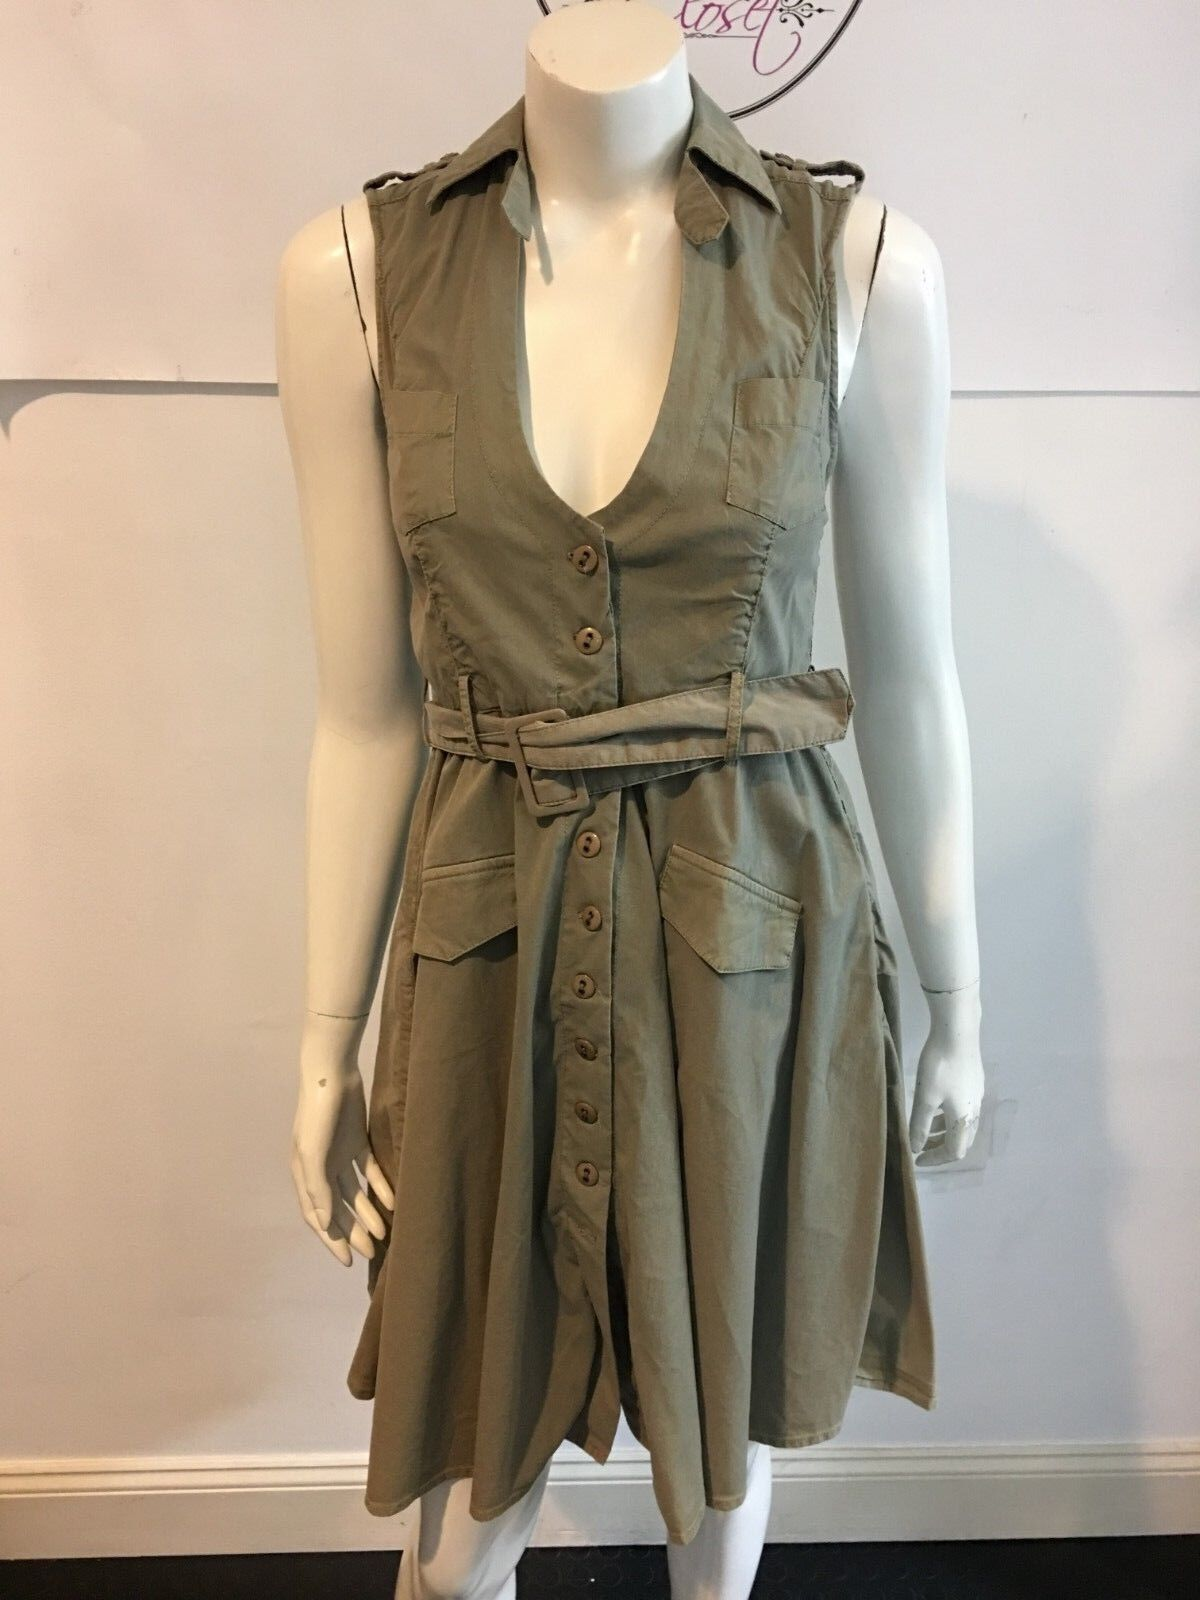 LA ROK 111018 NWT  258 ARMY SLEEVELESS JENERAL DRESS  SZ XS